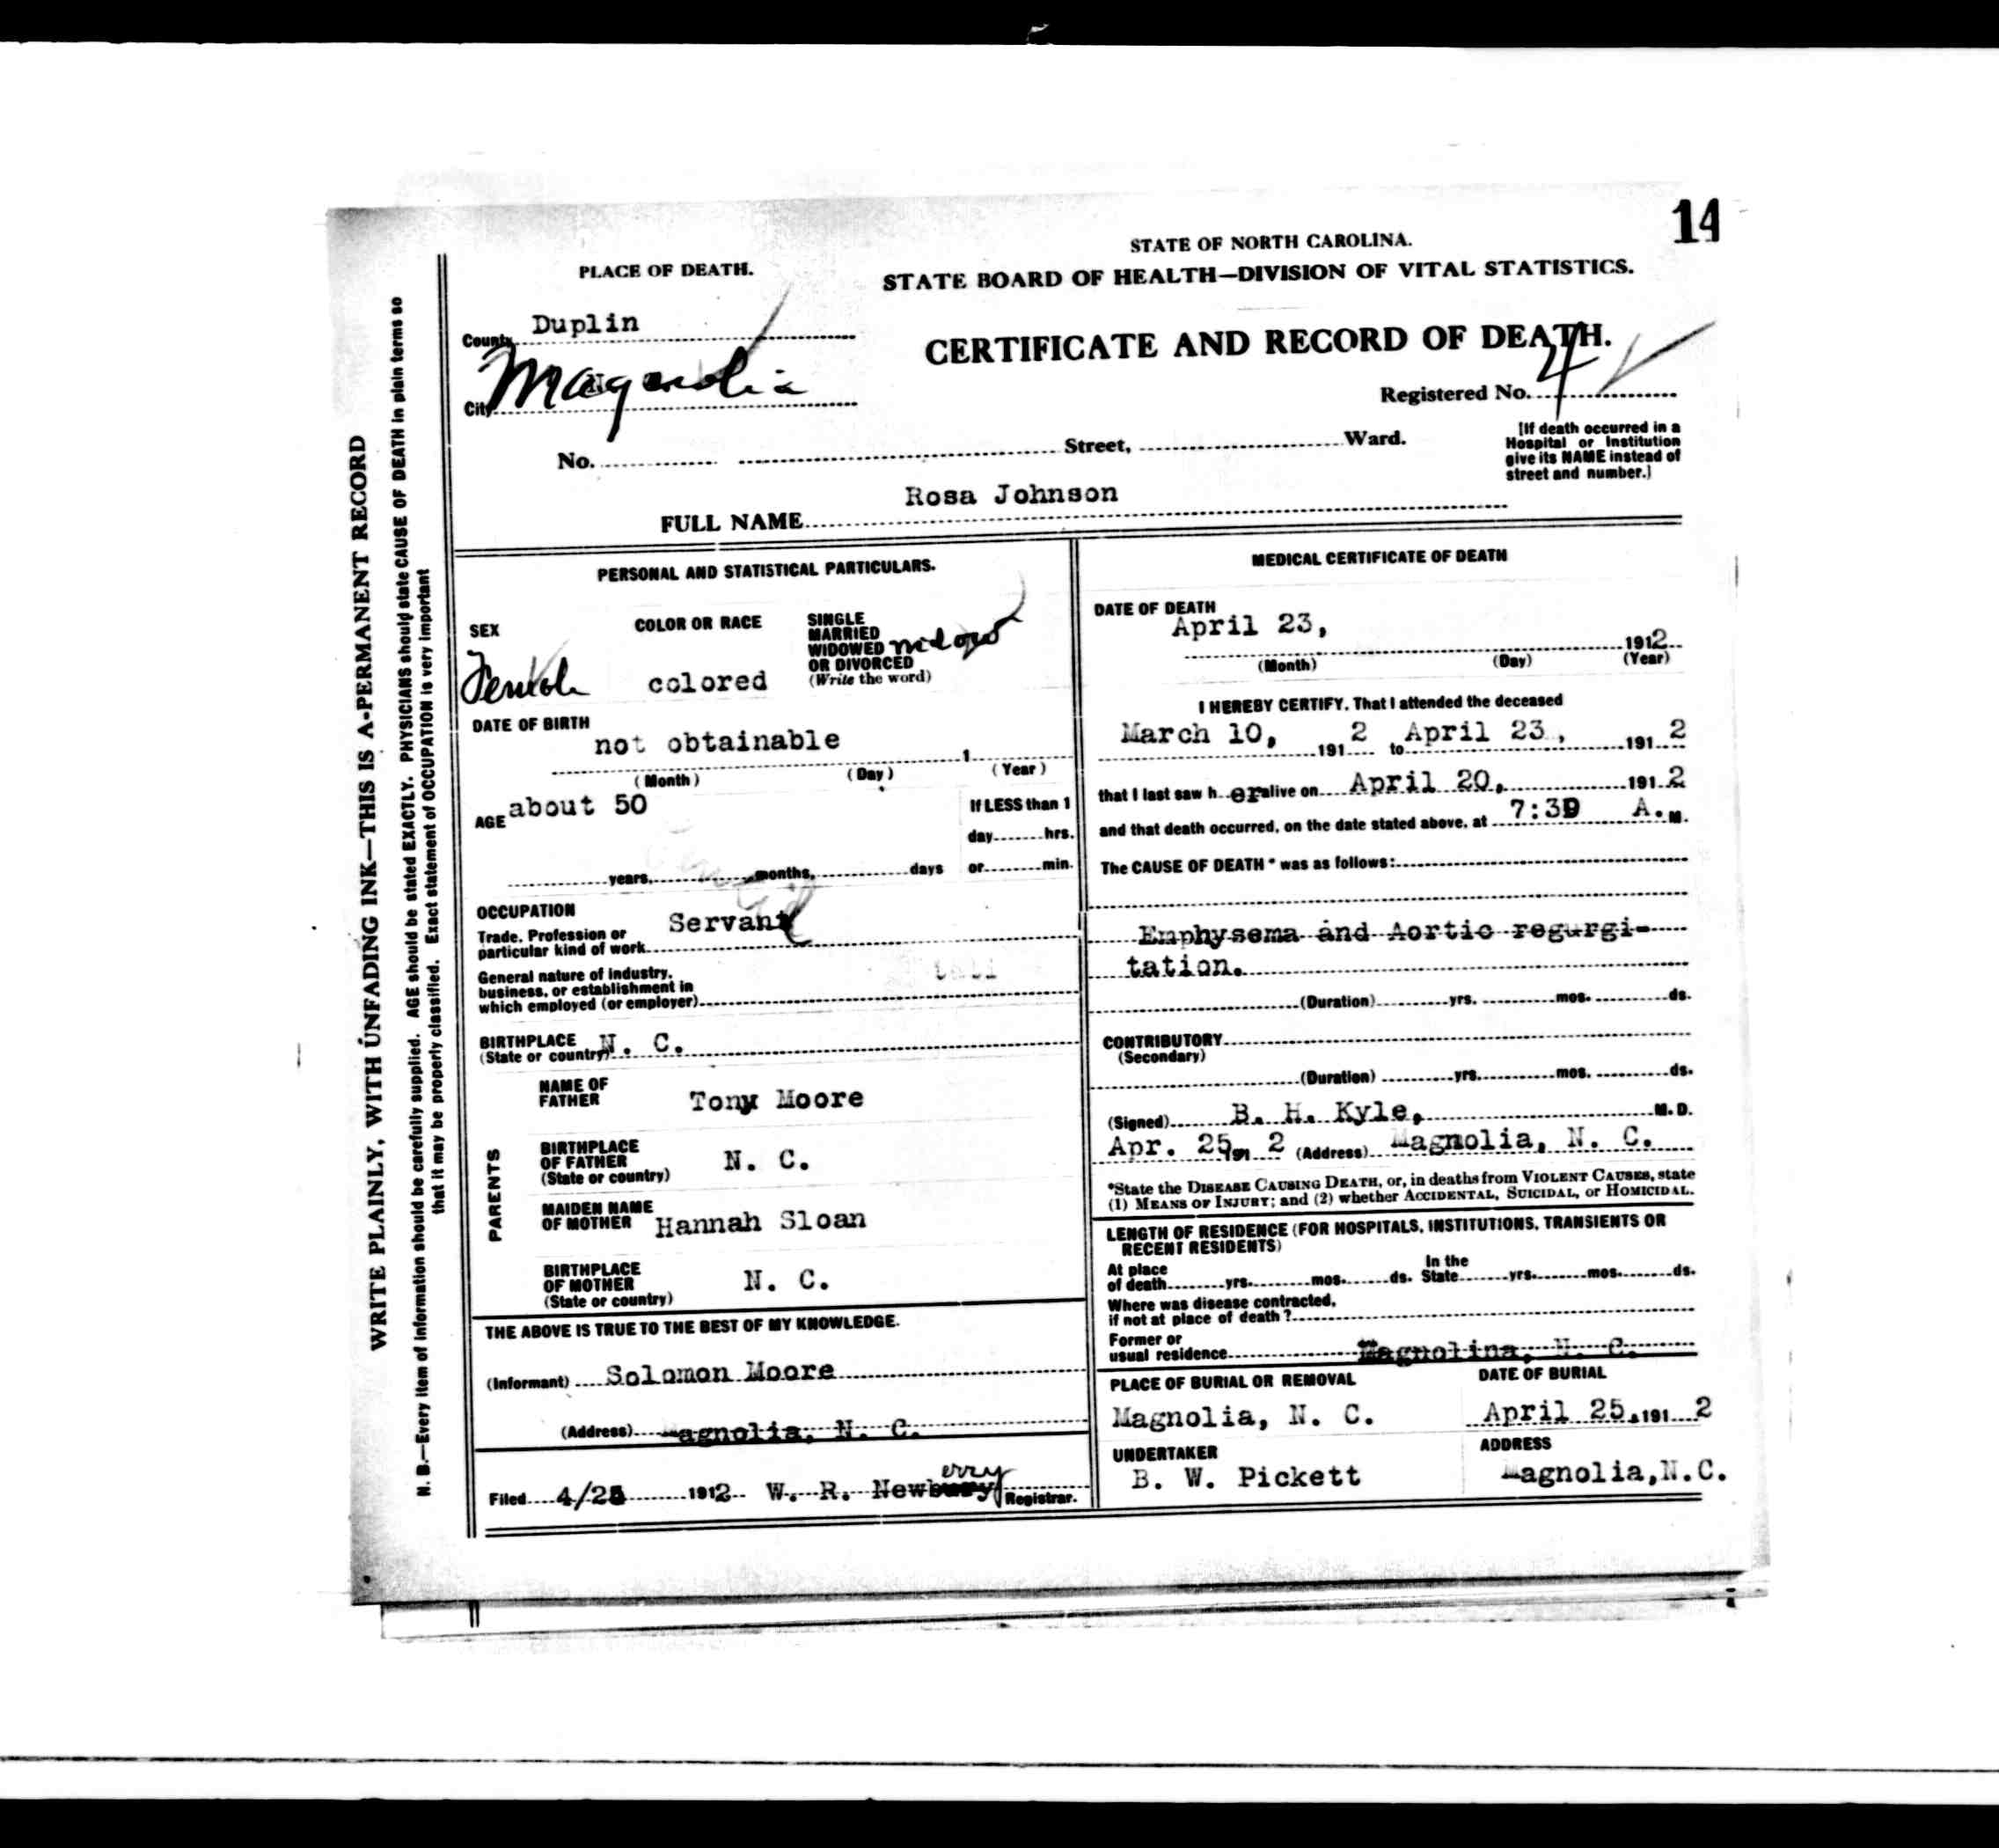 Duplin County Death Certificates from 1912